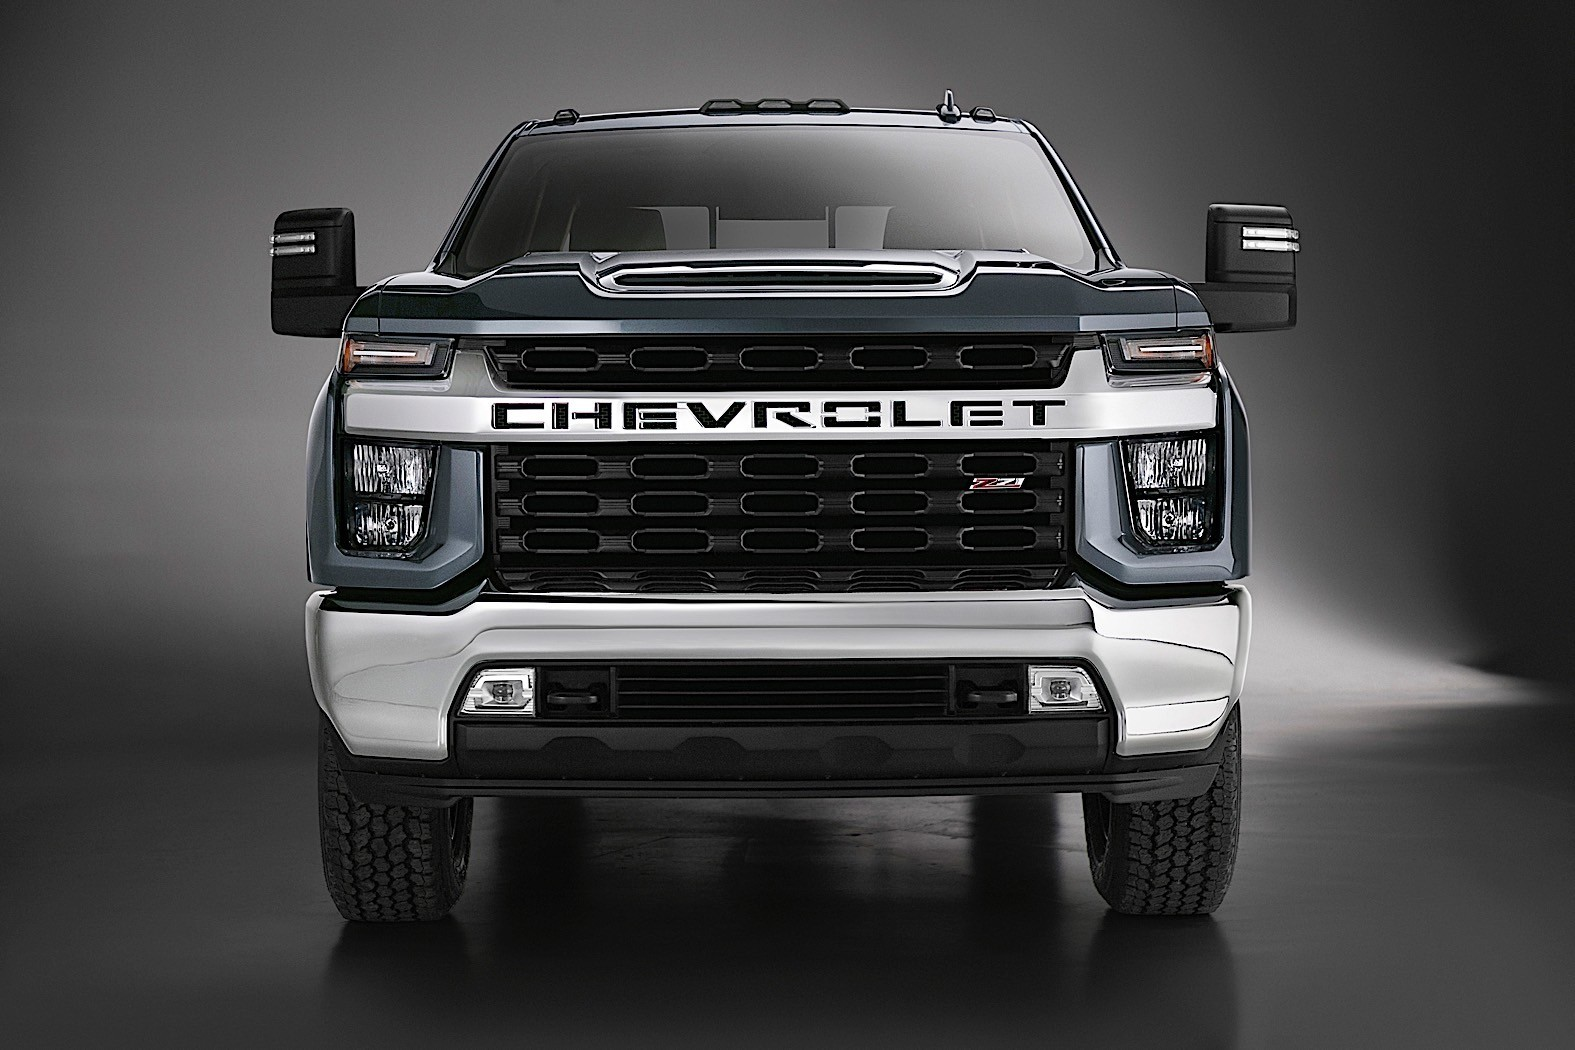 2020 Chevrolet Silverado HD Looks Bling-Bling In High ...